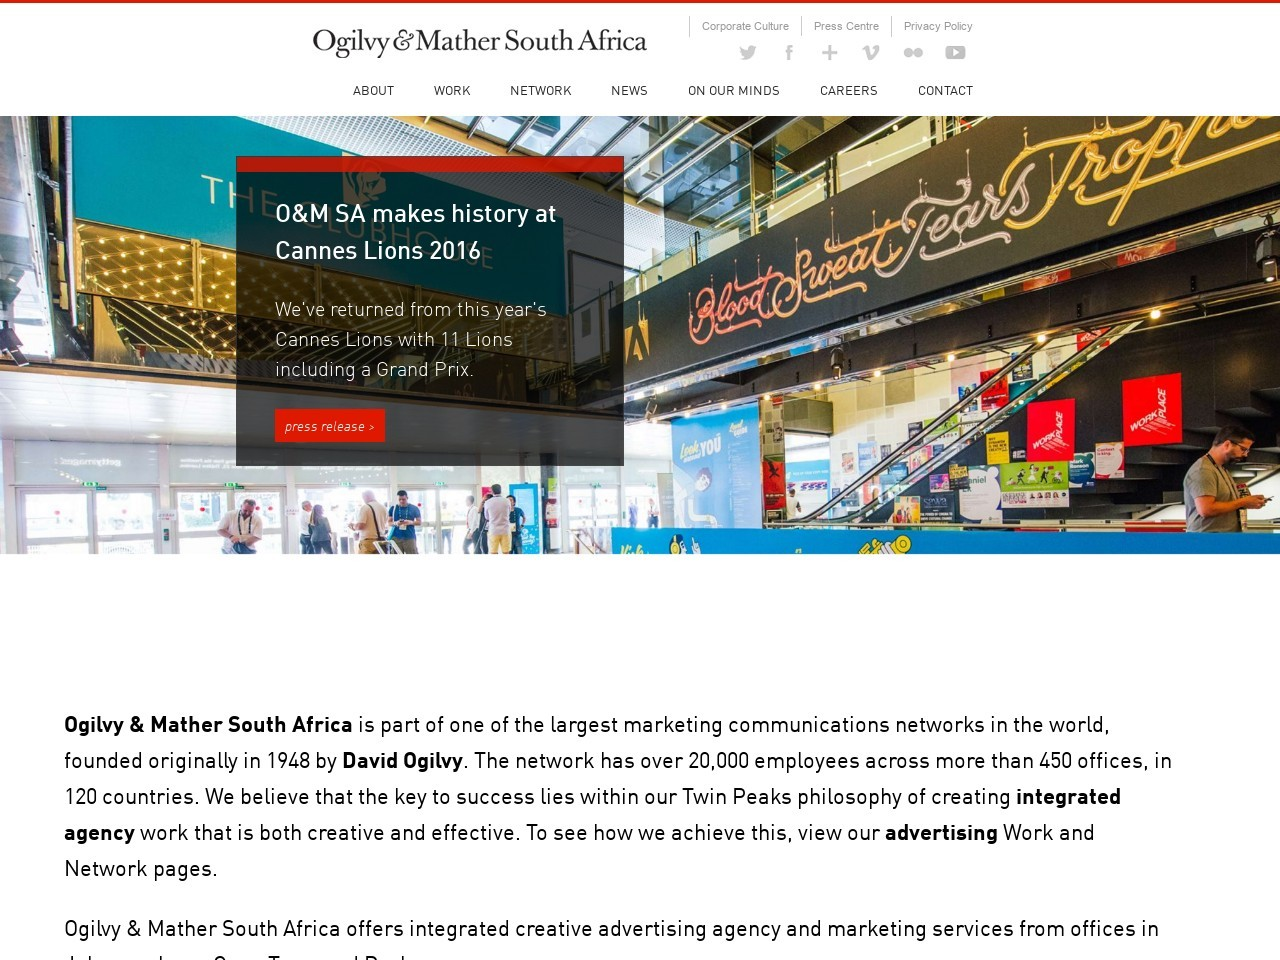 Ogilvy & Mather South Africa